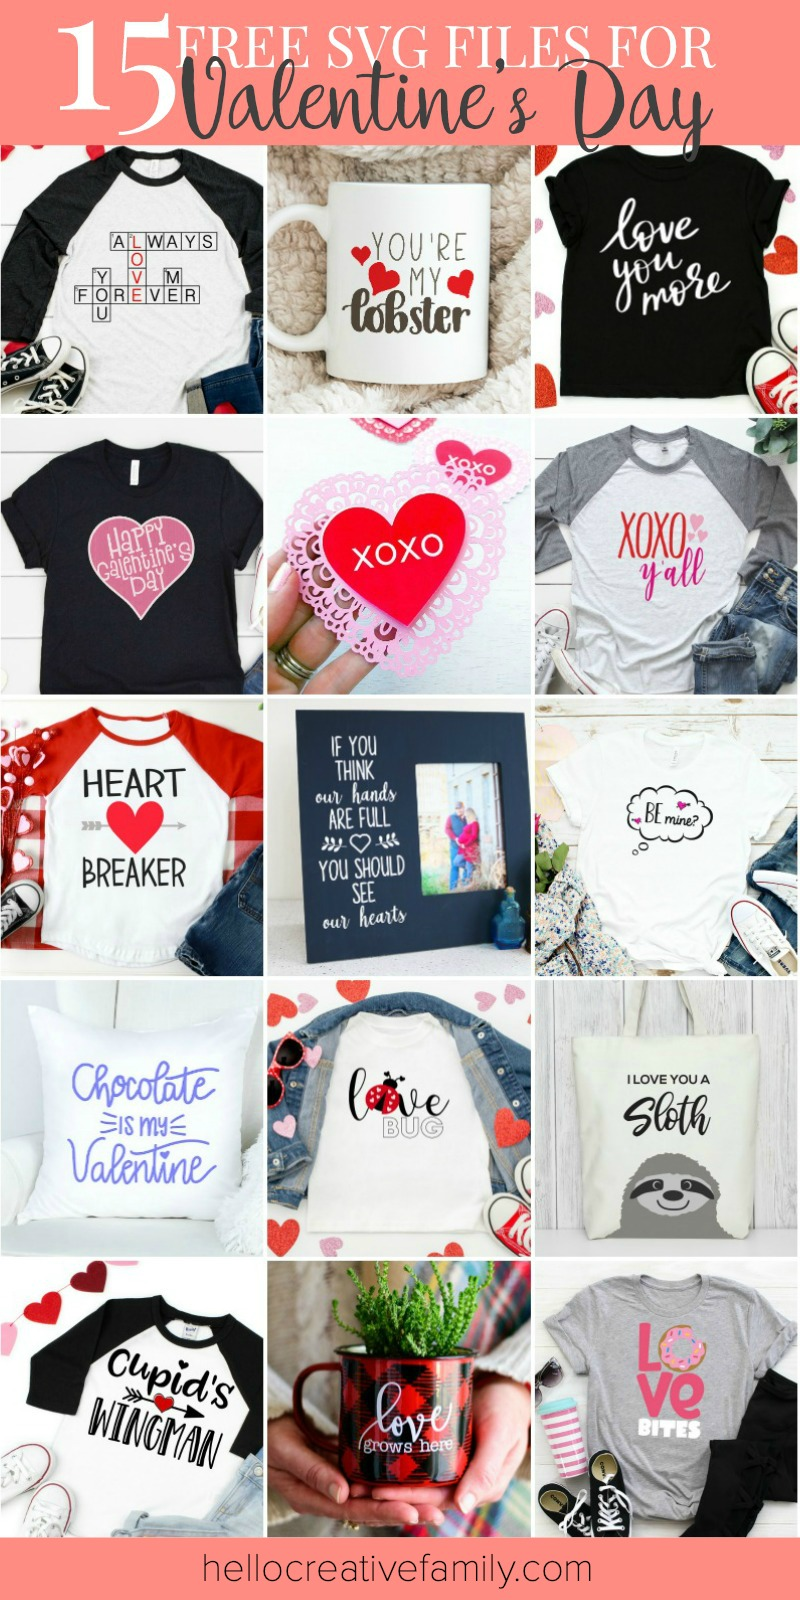 "How adorable are these projects?!?!? Pull out your Cricut or SIlhouette and start whipping up Valentine's Day handmade gifts and crafts! We are sharing 15 free Valentine's Day SVG Files including our own ""Be Mine"" cut file! Make an easy handmade gift or decorate for the holiday of love with a fun cutting machine project! #Valentine #ValentinesDay #Cricut #Silhouette #CricutProject #FreeSVG"